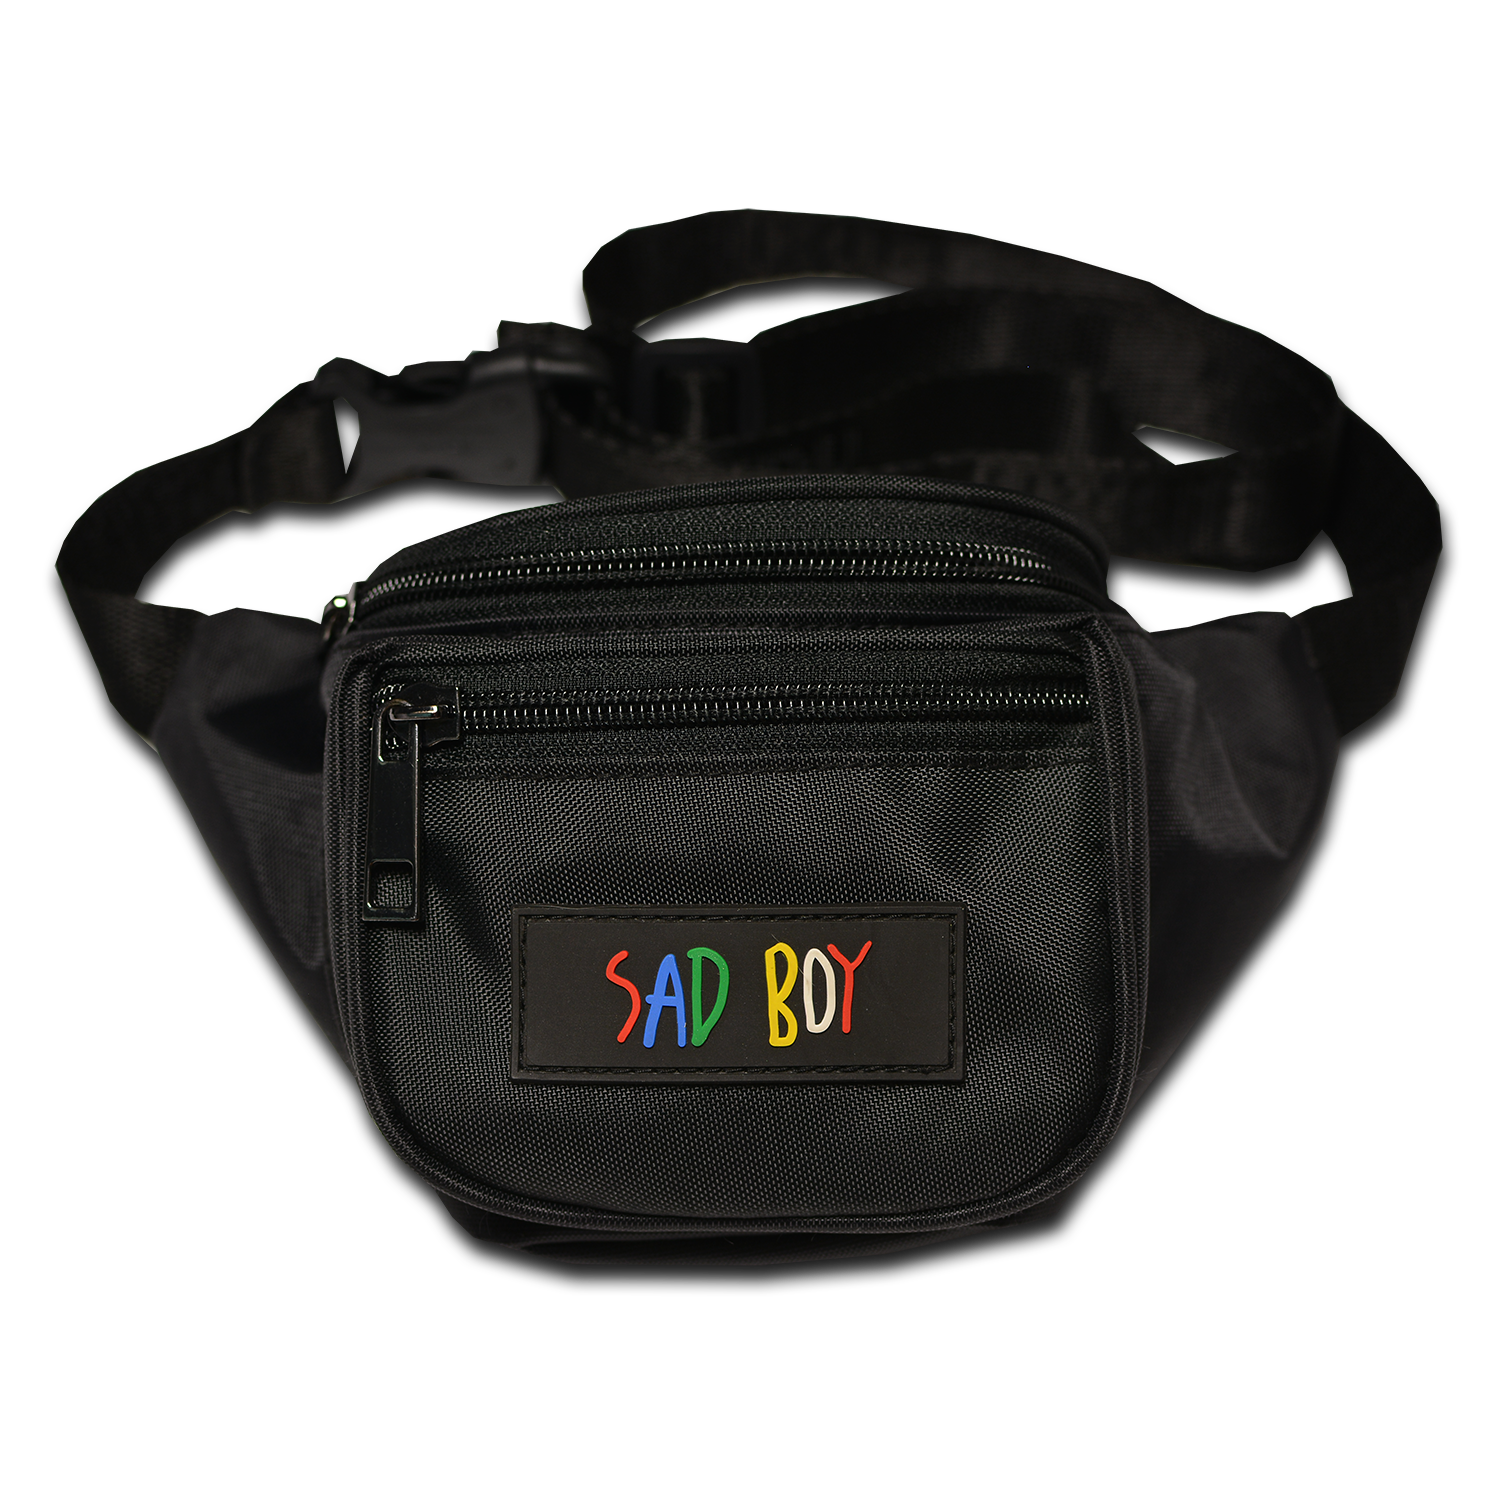 SADBOY BLACK KID'S BAG